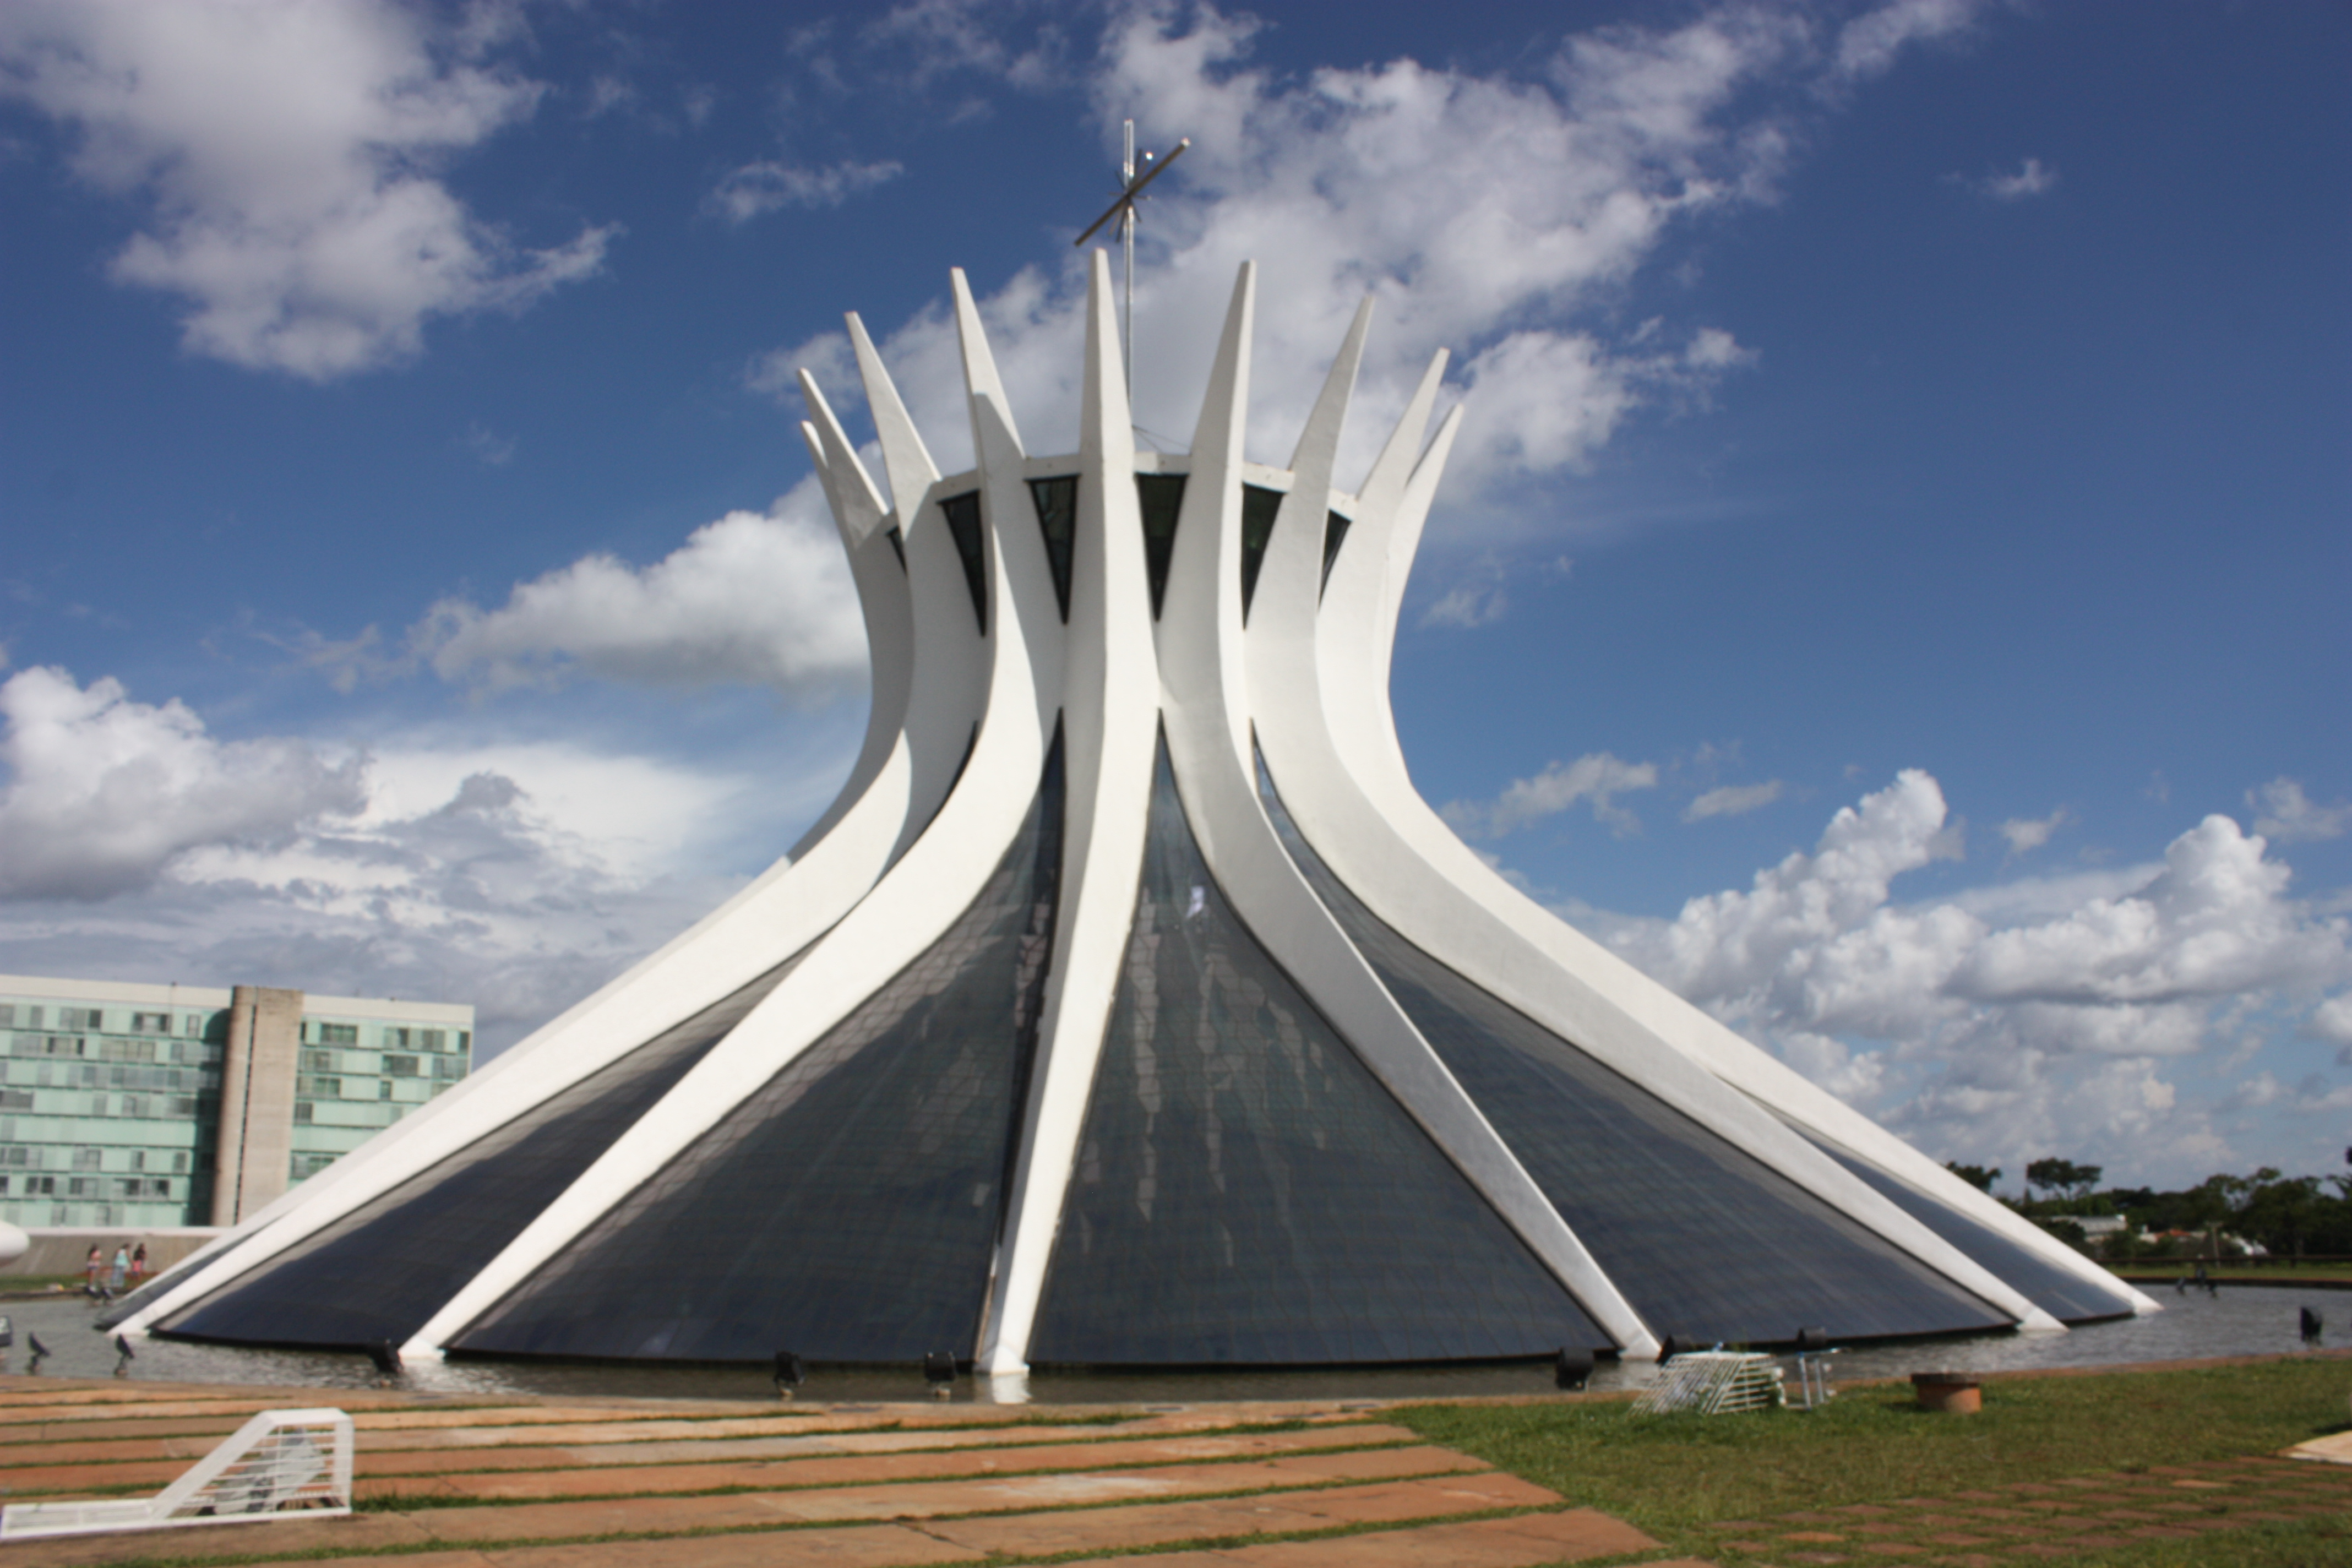 Quero speed dating brasilia cathedral